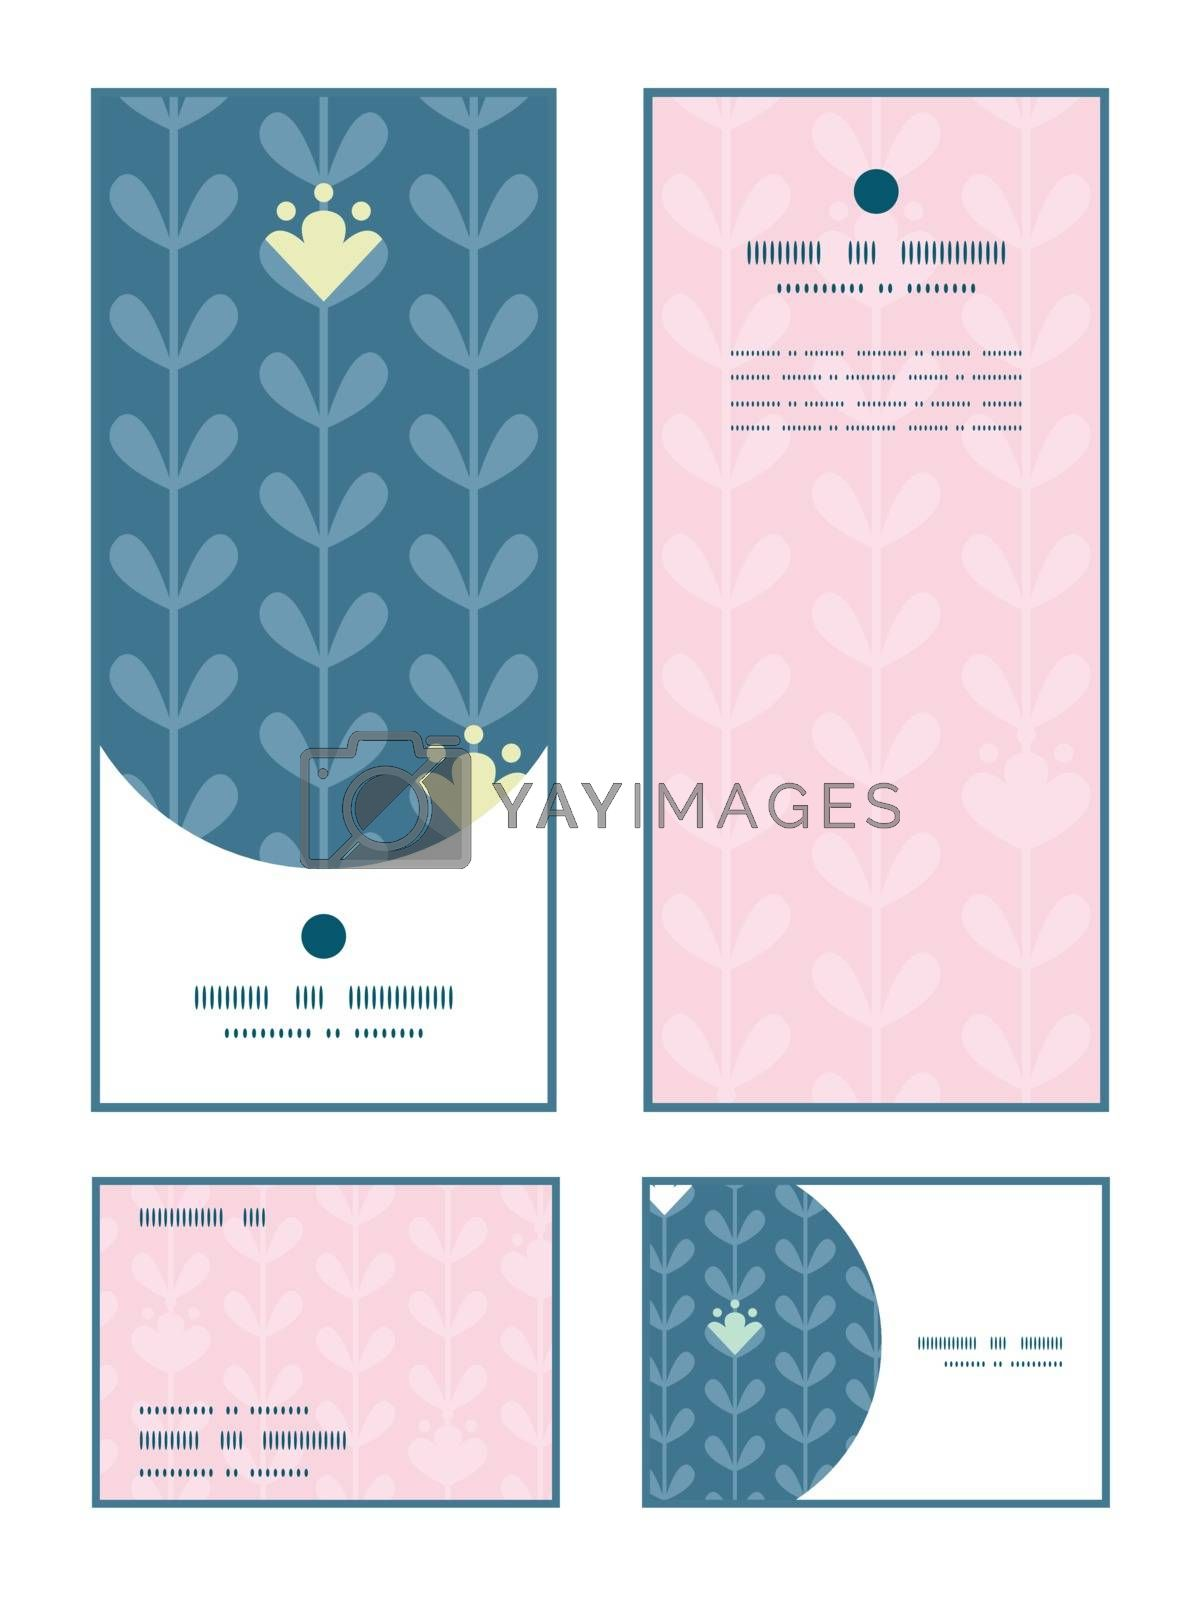 Vector blloming vines stripes vertical frame pattern invitation greeting, RSVP and thank you cards set graphic design